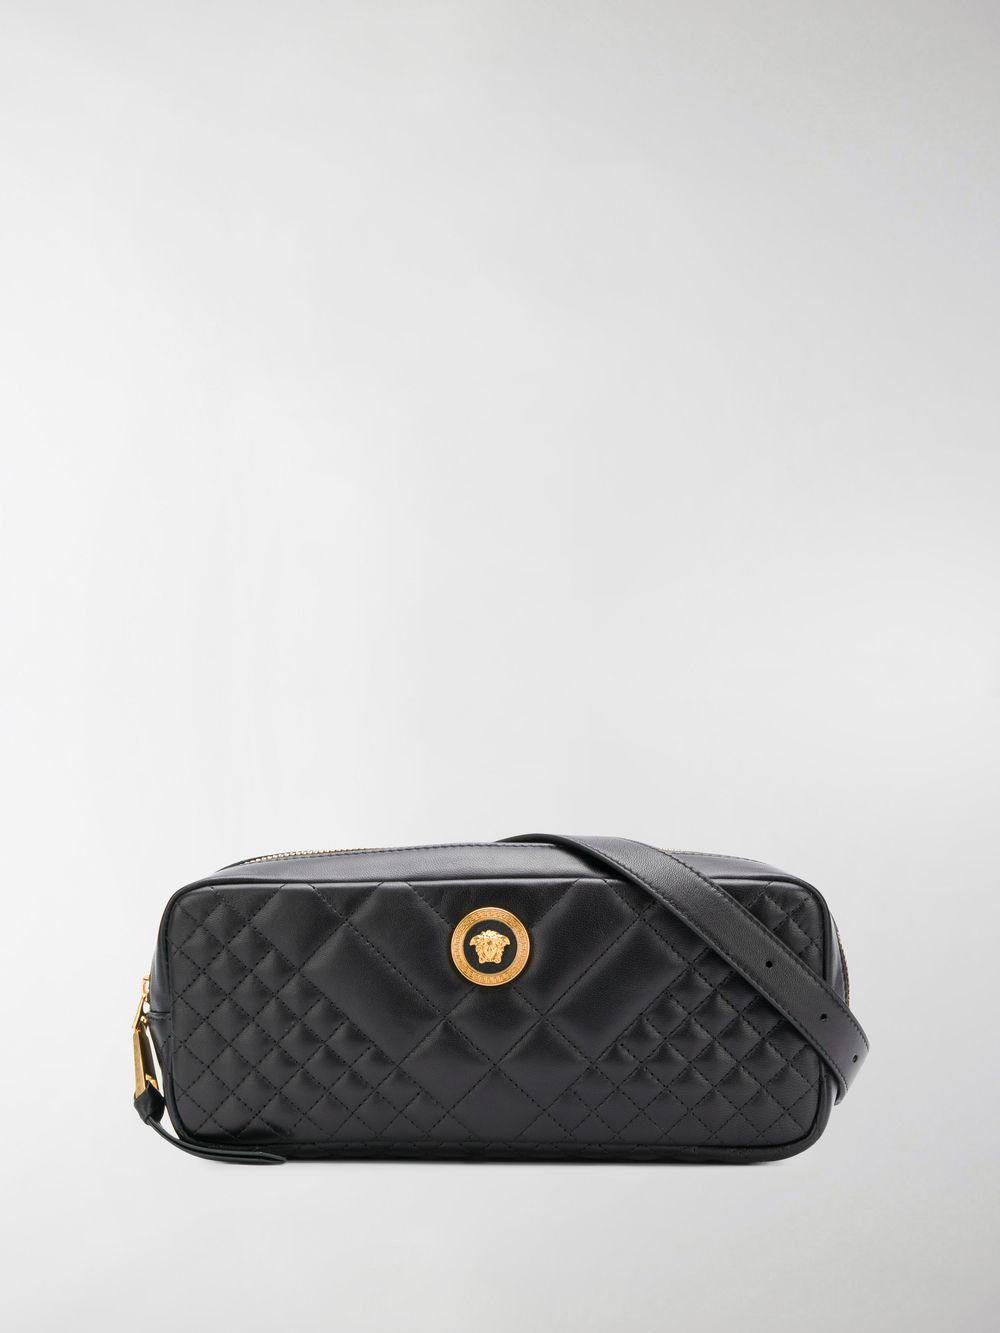 0284d6ebfc Versace Black Quilted Bag